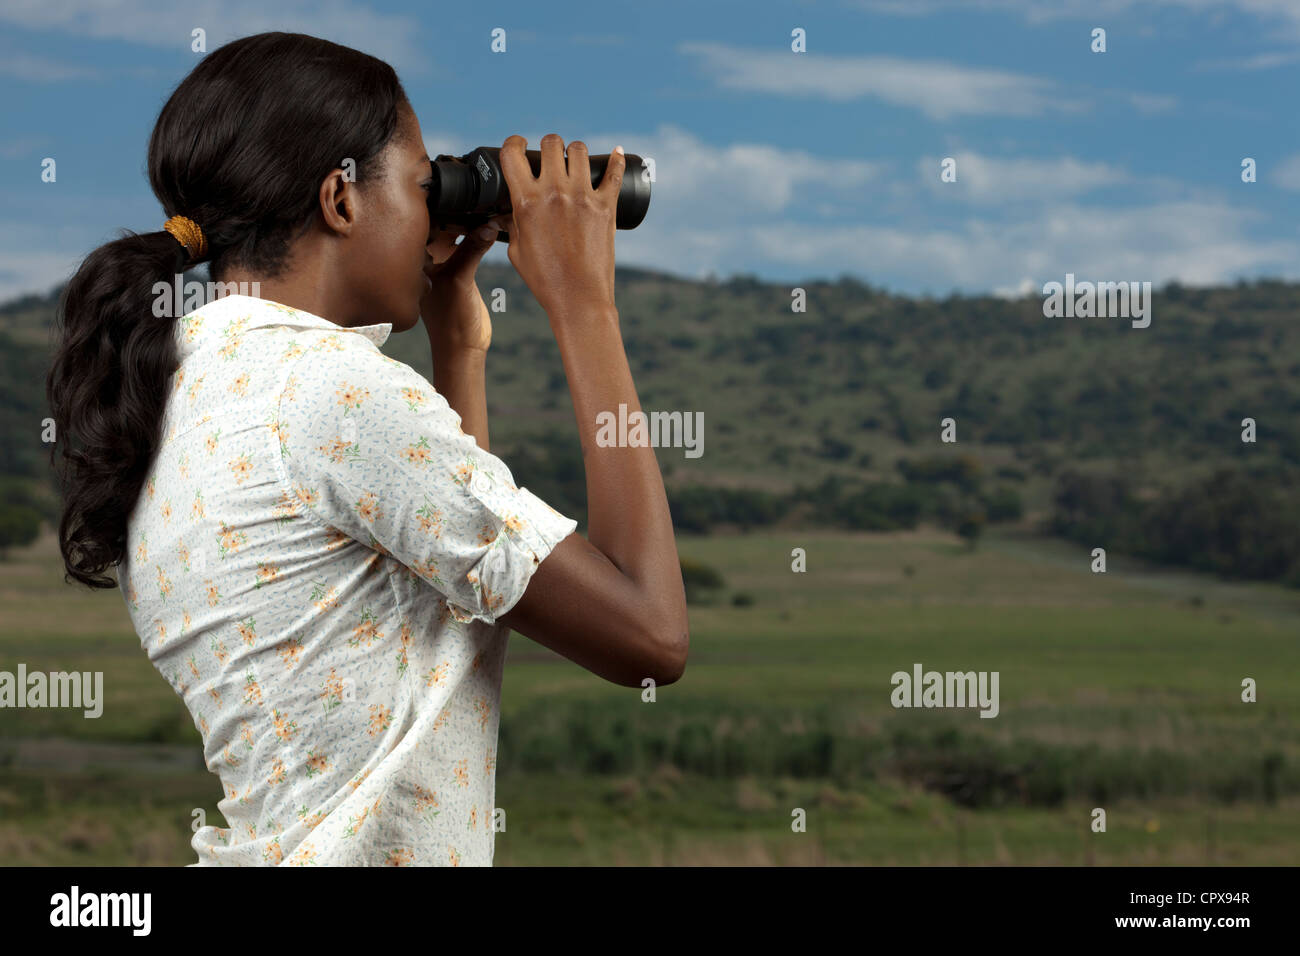 An African woman searches for animals at a Game Reserve through binoculars - Stock Image